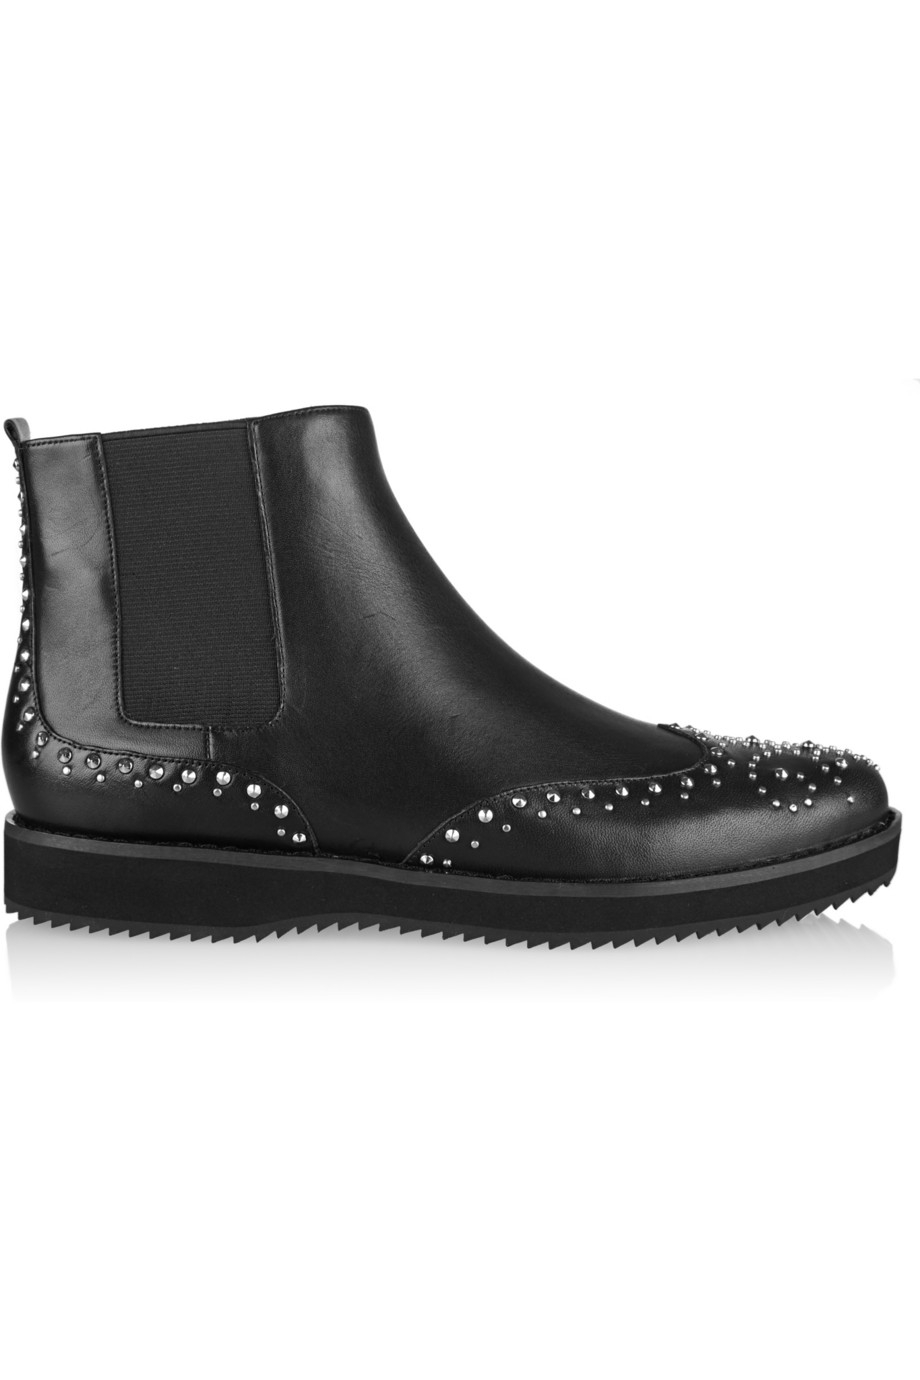 Lyst - Michael Michael Kors Sofie Studded Leather Chelsea Boots In Black